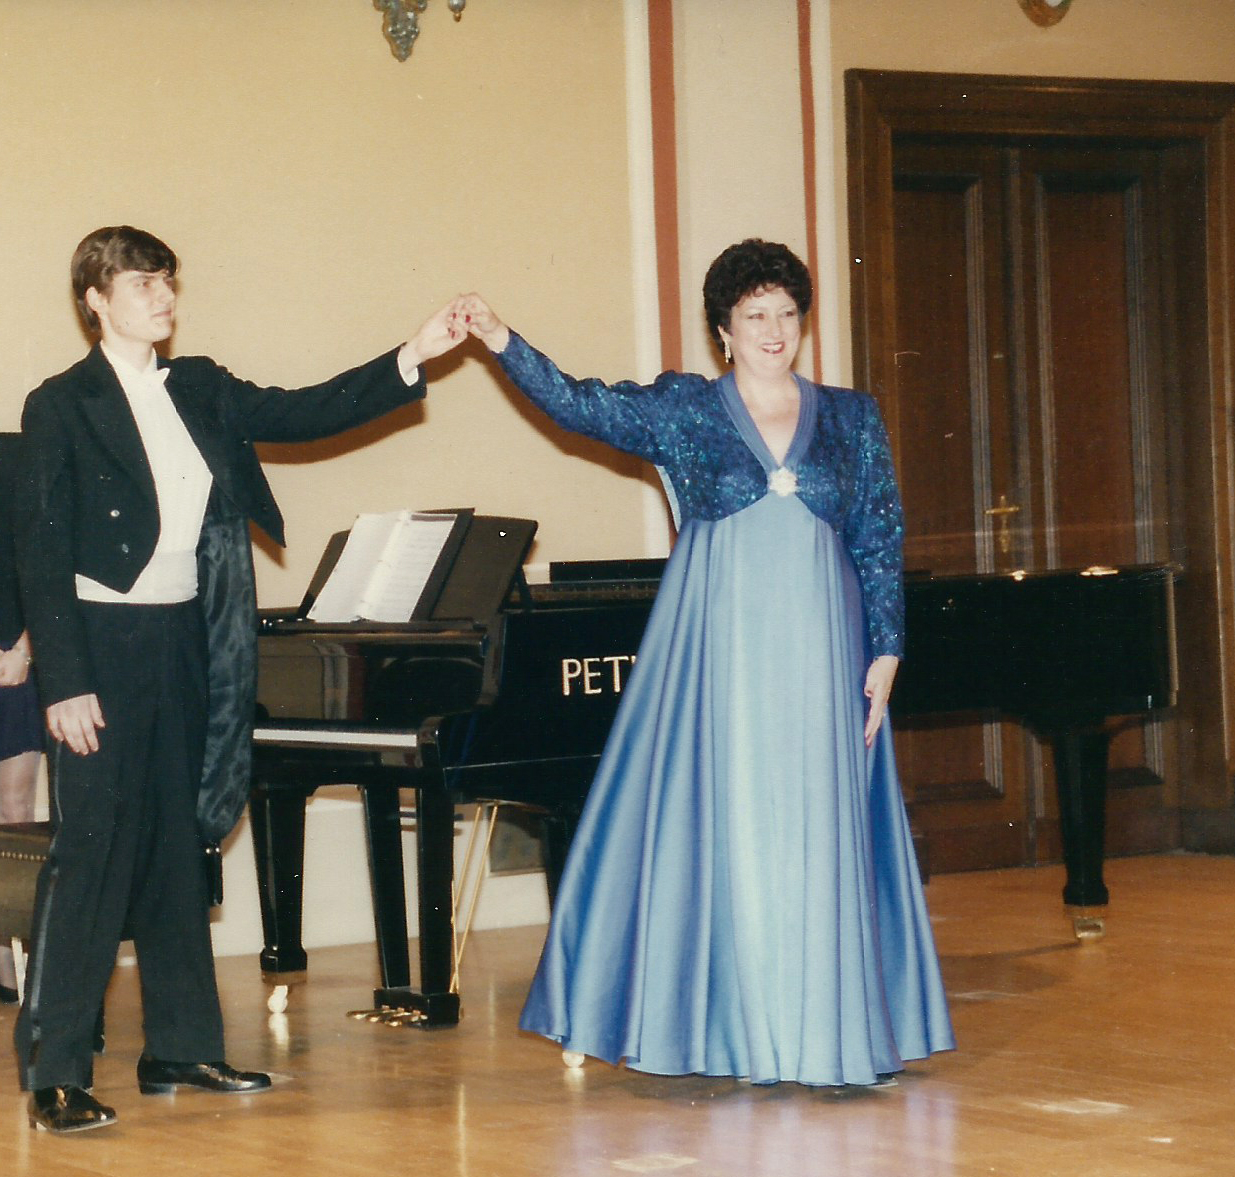 Hudebni večer (Musical Evening), Rudofinum Concert Hall, 1995 – Janice with Michael Keprt, pianist